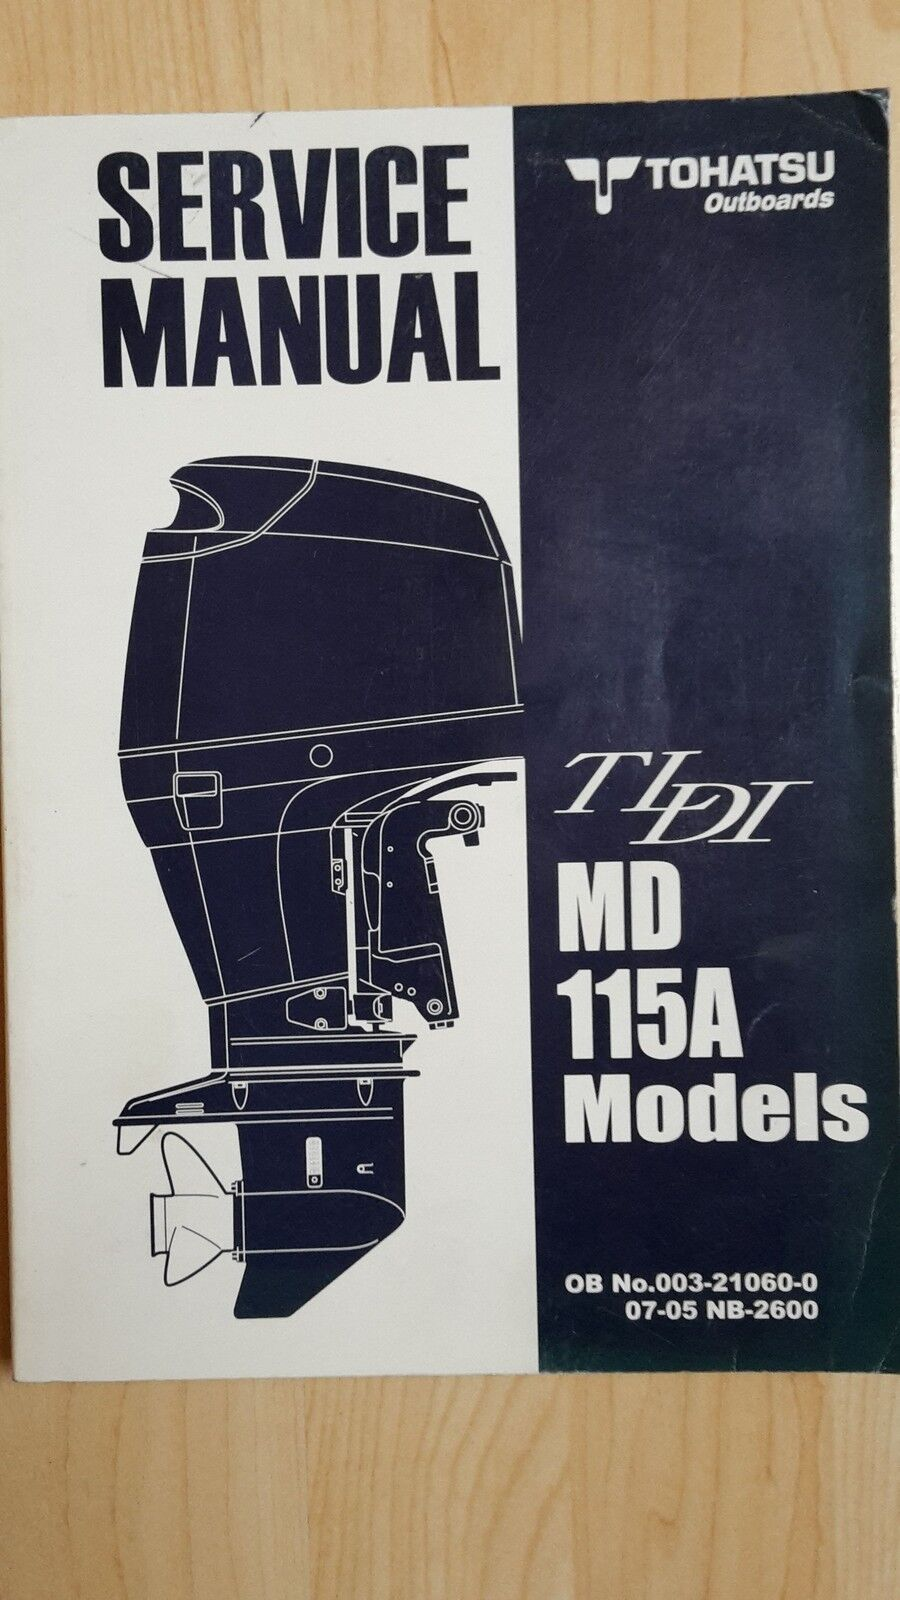 TOHATSU MD115A TLDI SERVICE MANUAL OUTBOARDS OUTBOARDS MANUAL AUSSENBORDER a28a49